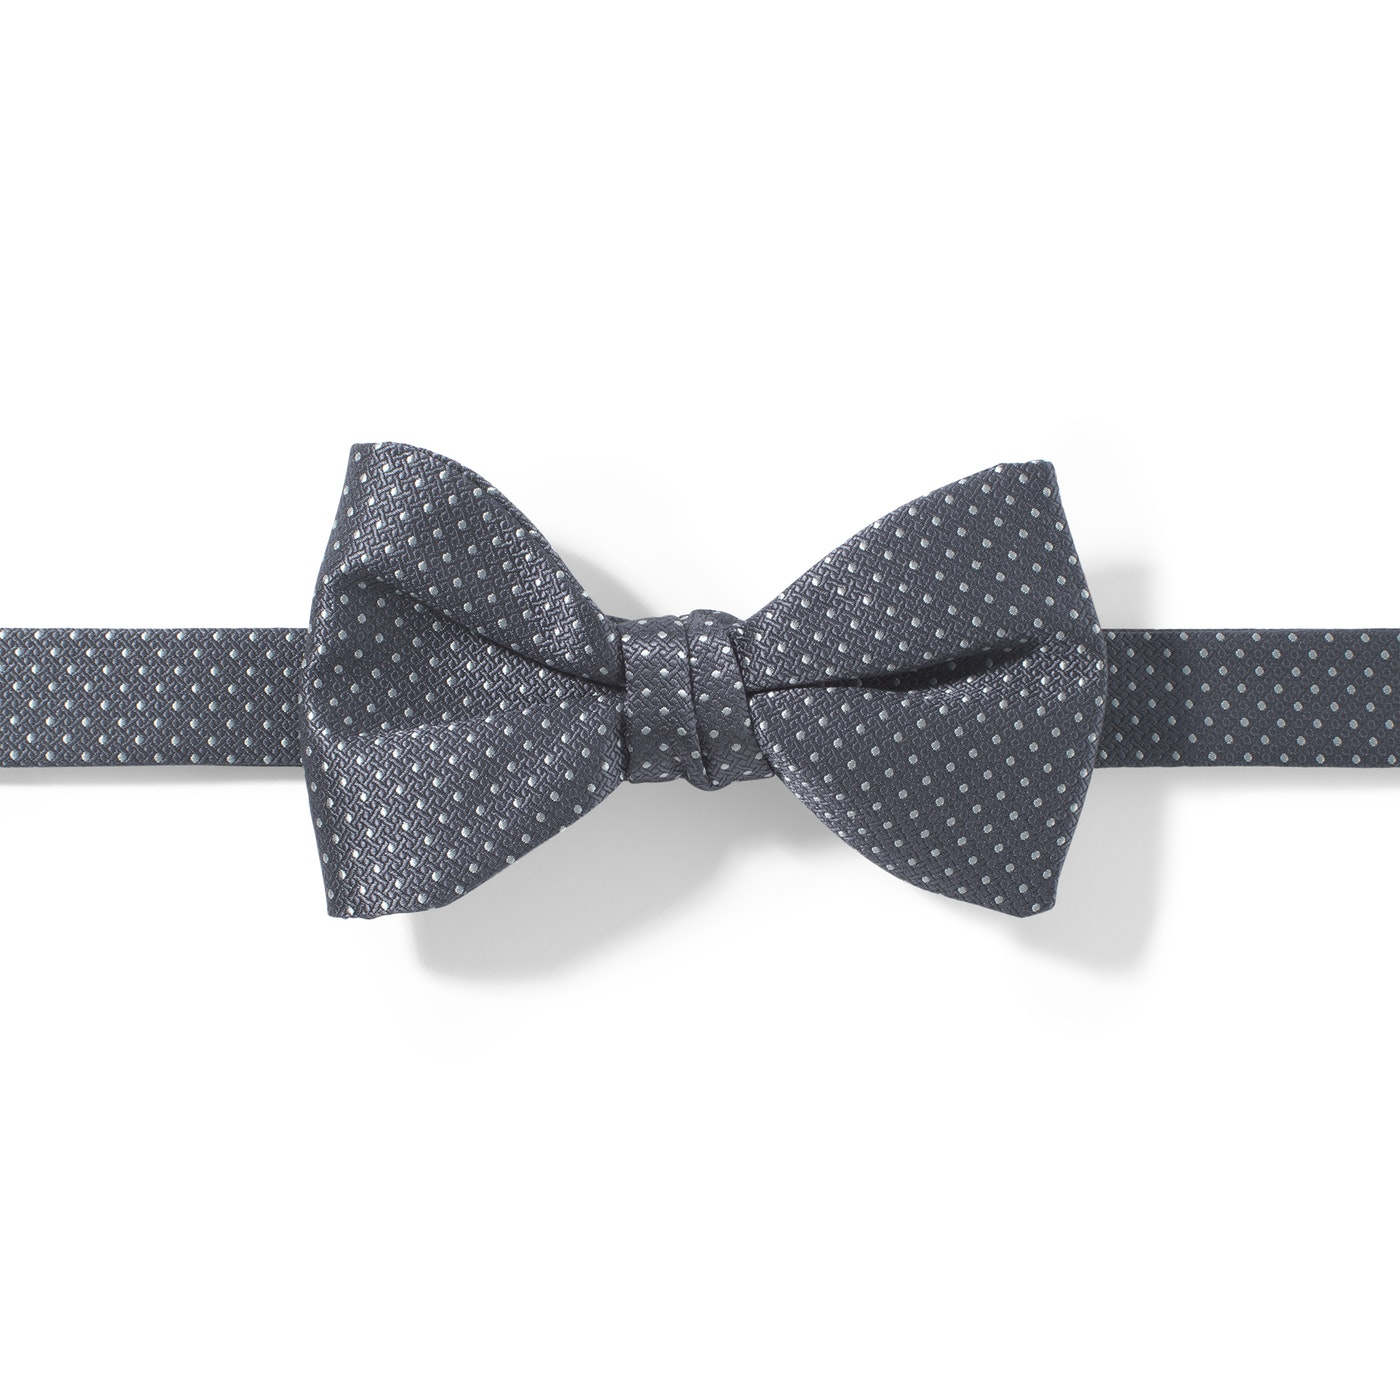 Charcoal-Pewter and White Pin Dot Pre-tied Bow Tie